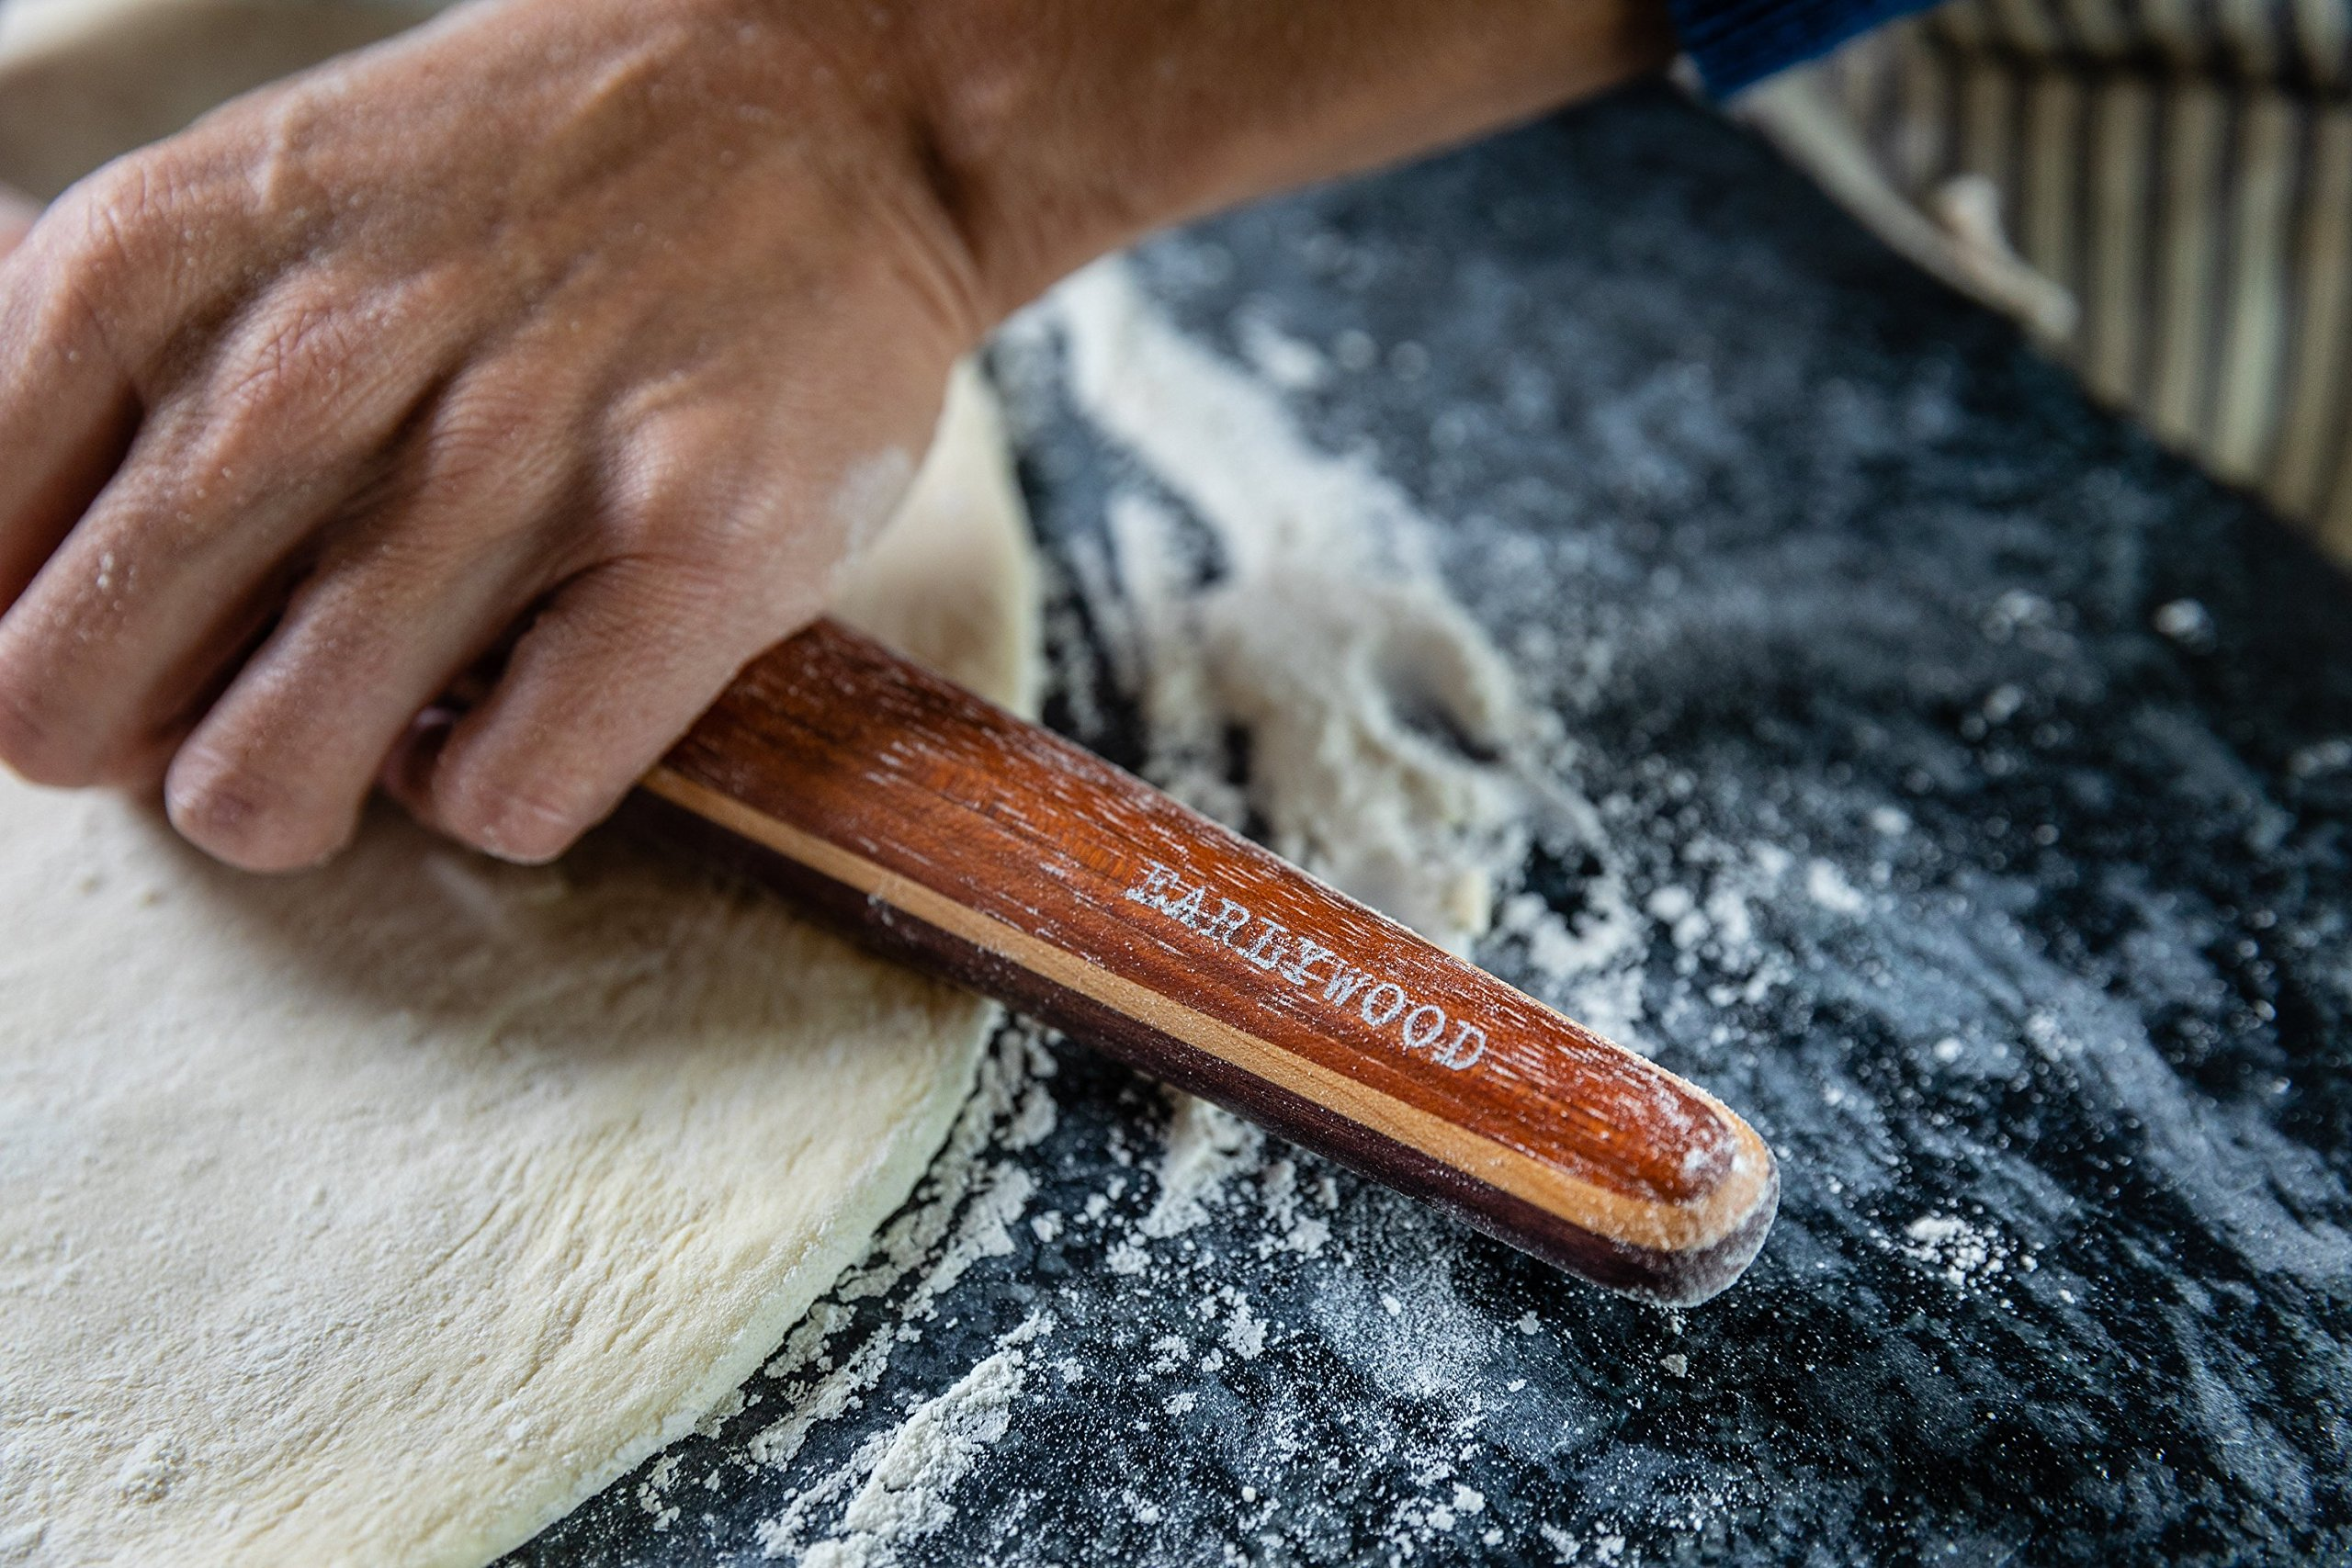 Earlywood French Rolling Pin - Tapered Wooden Rolling Pin for Baking Pizza, Pastry Dough or Pasta - Hard Wood Roller Baking Pin Made in USA, By Earlywood -Jatoba, Maple, Mexican Ebony,Multicolor by Earlywood (Image #4)